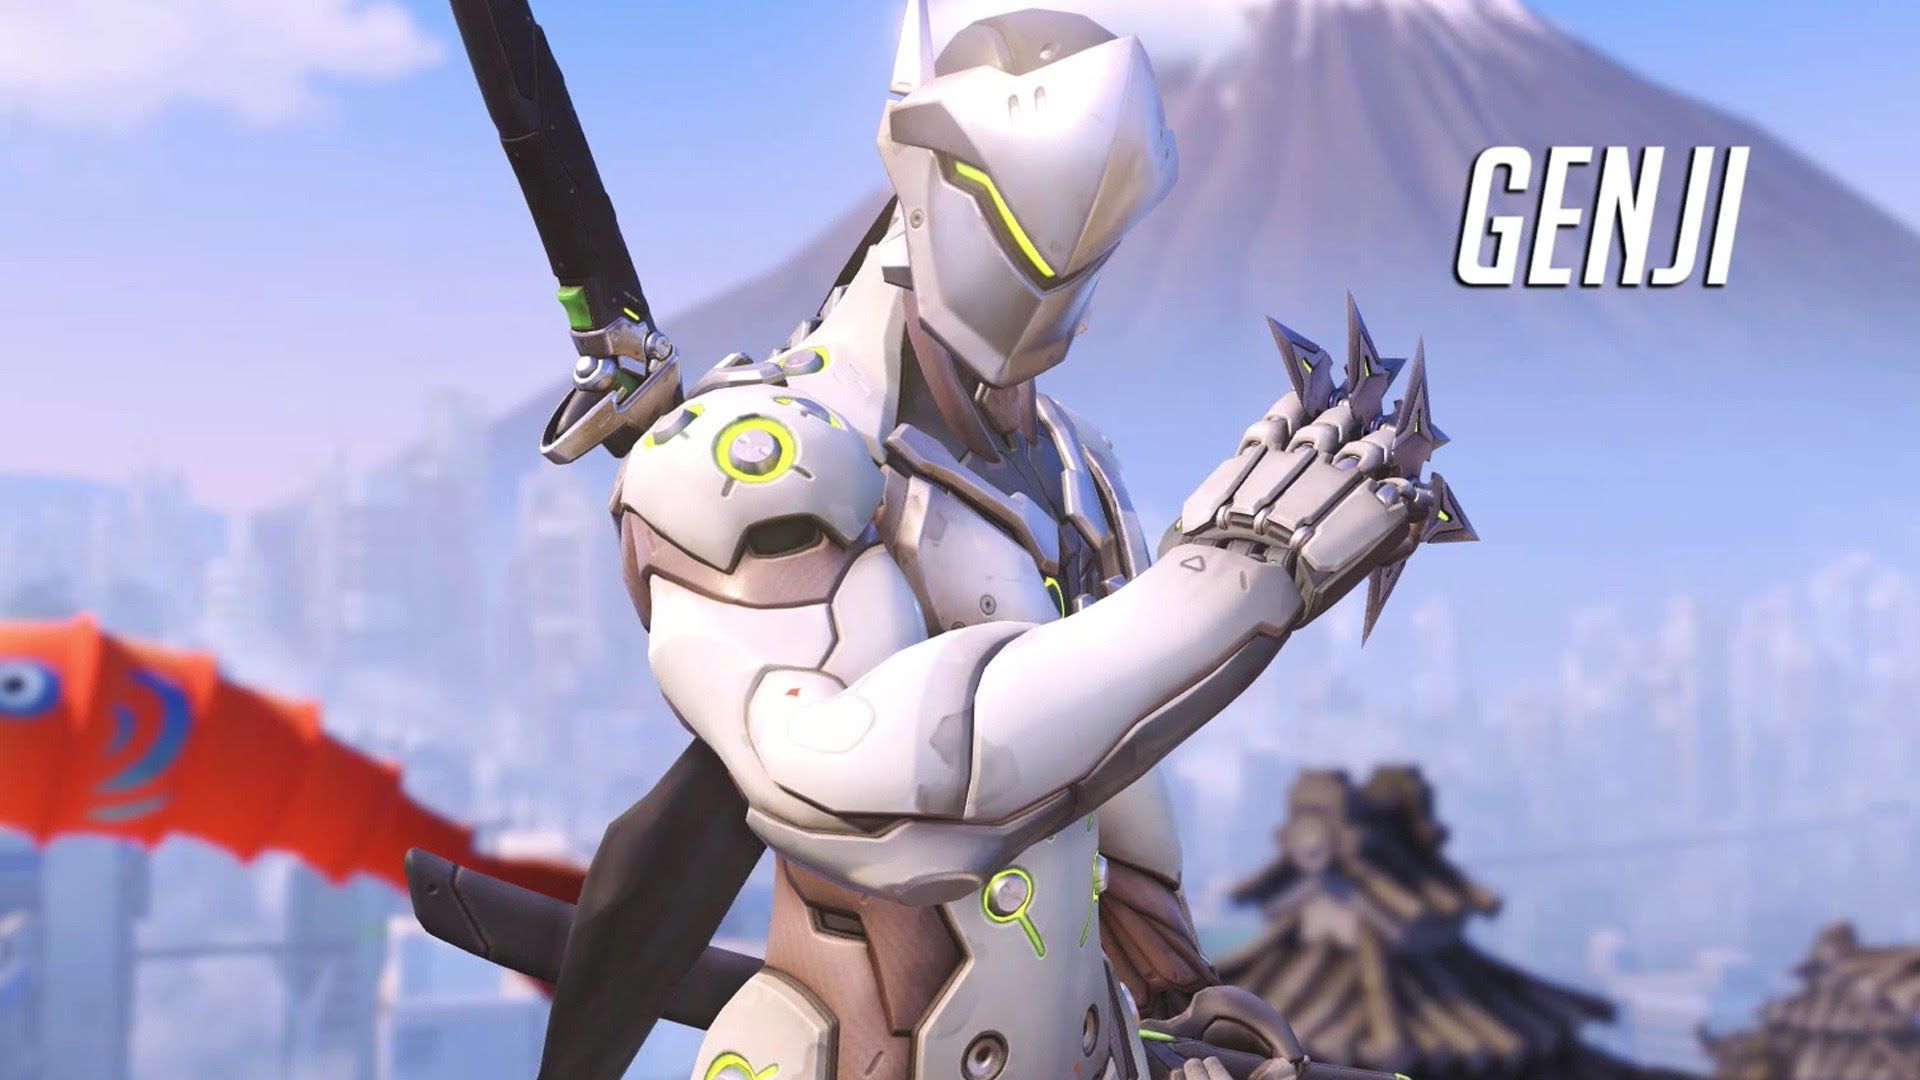 Overwatch Genji Hd Wallpapers 7wallpapers Net